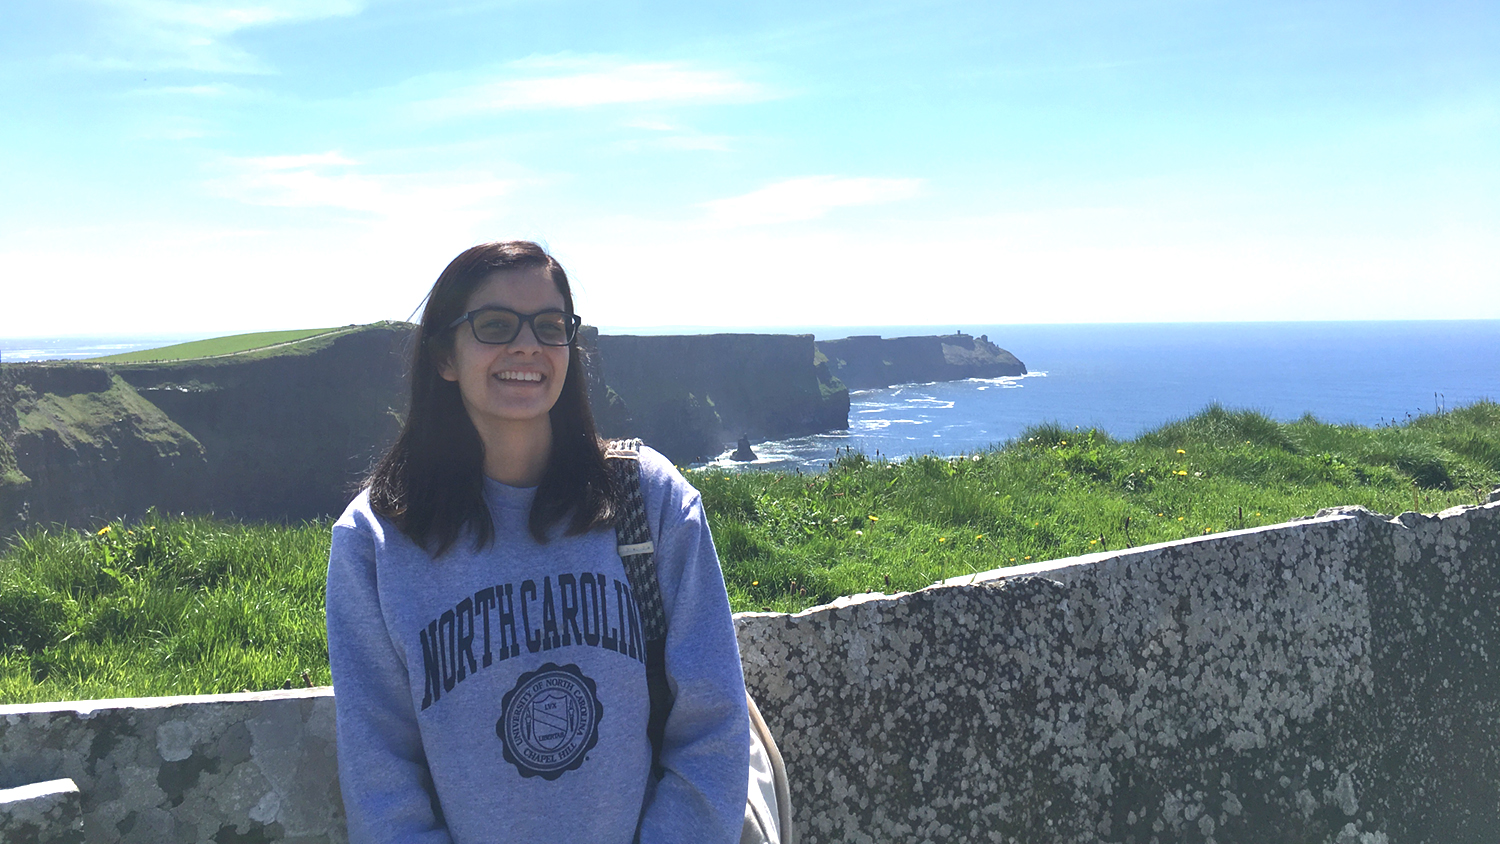 Emily Miramontes outside with cliffs and sea behind her